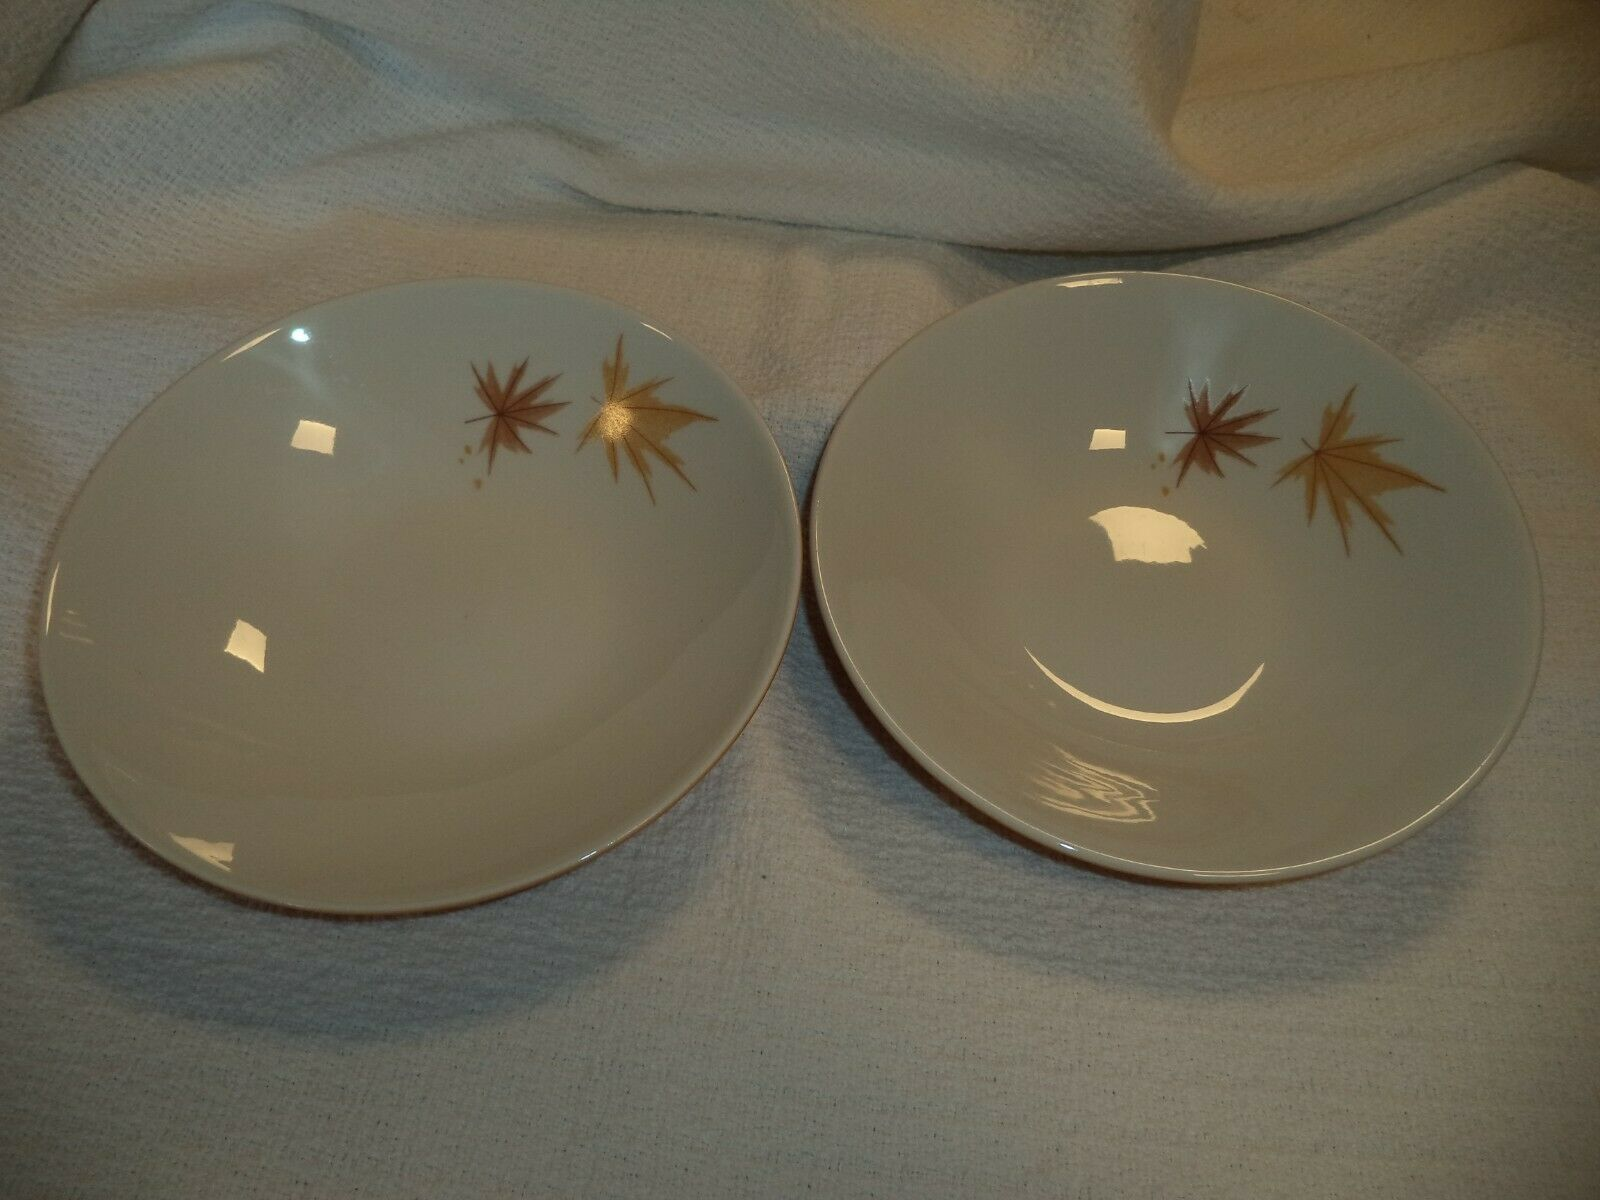 MCM Iroquois China Informal Ben Seibel Harvest Time Soup Bowls - $16.95